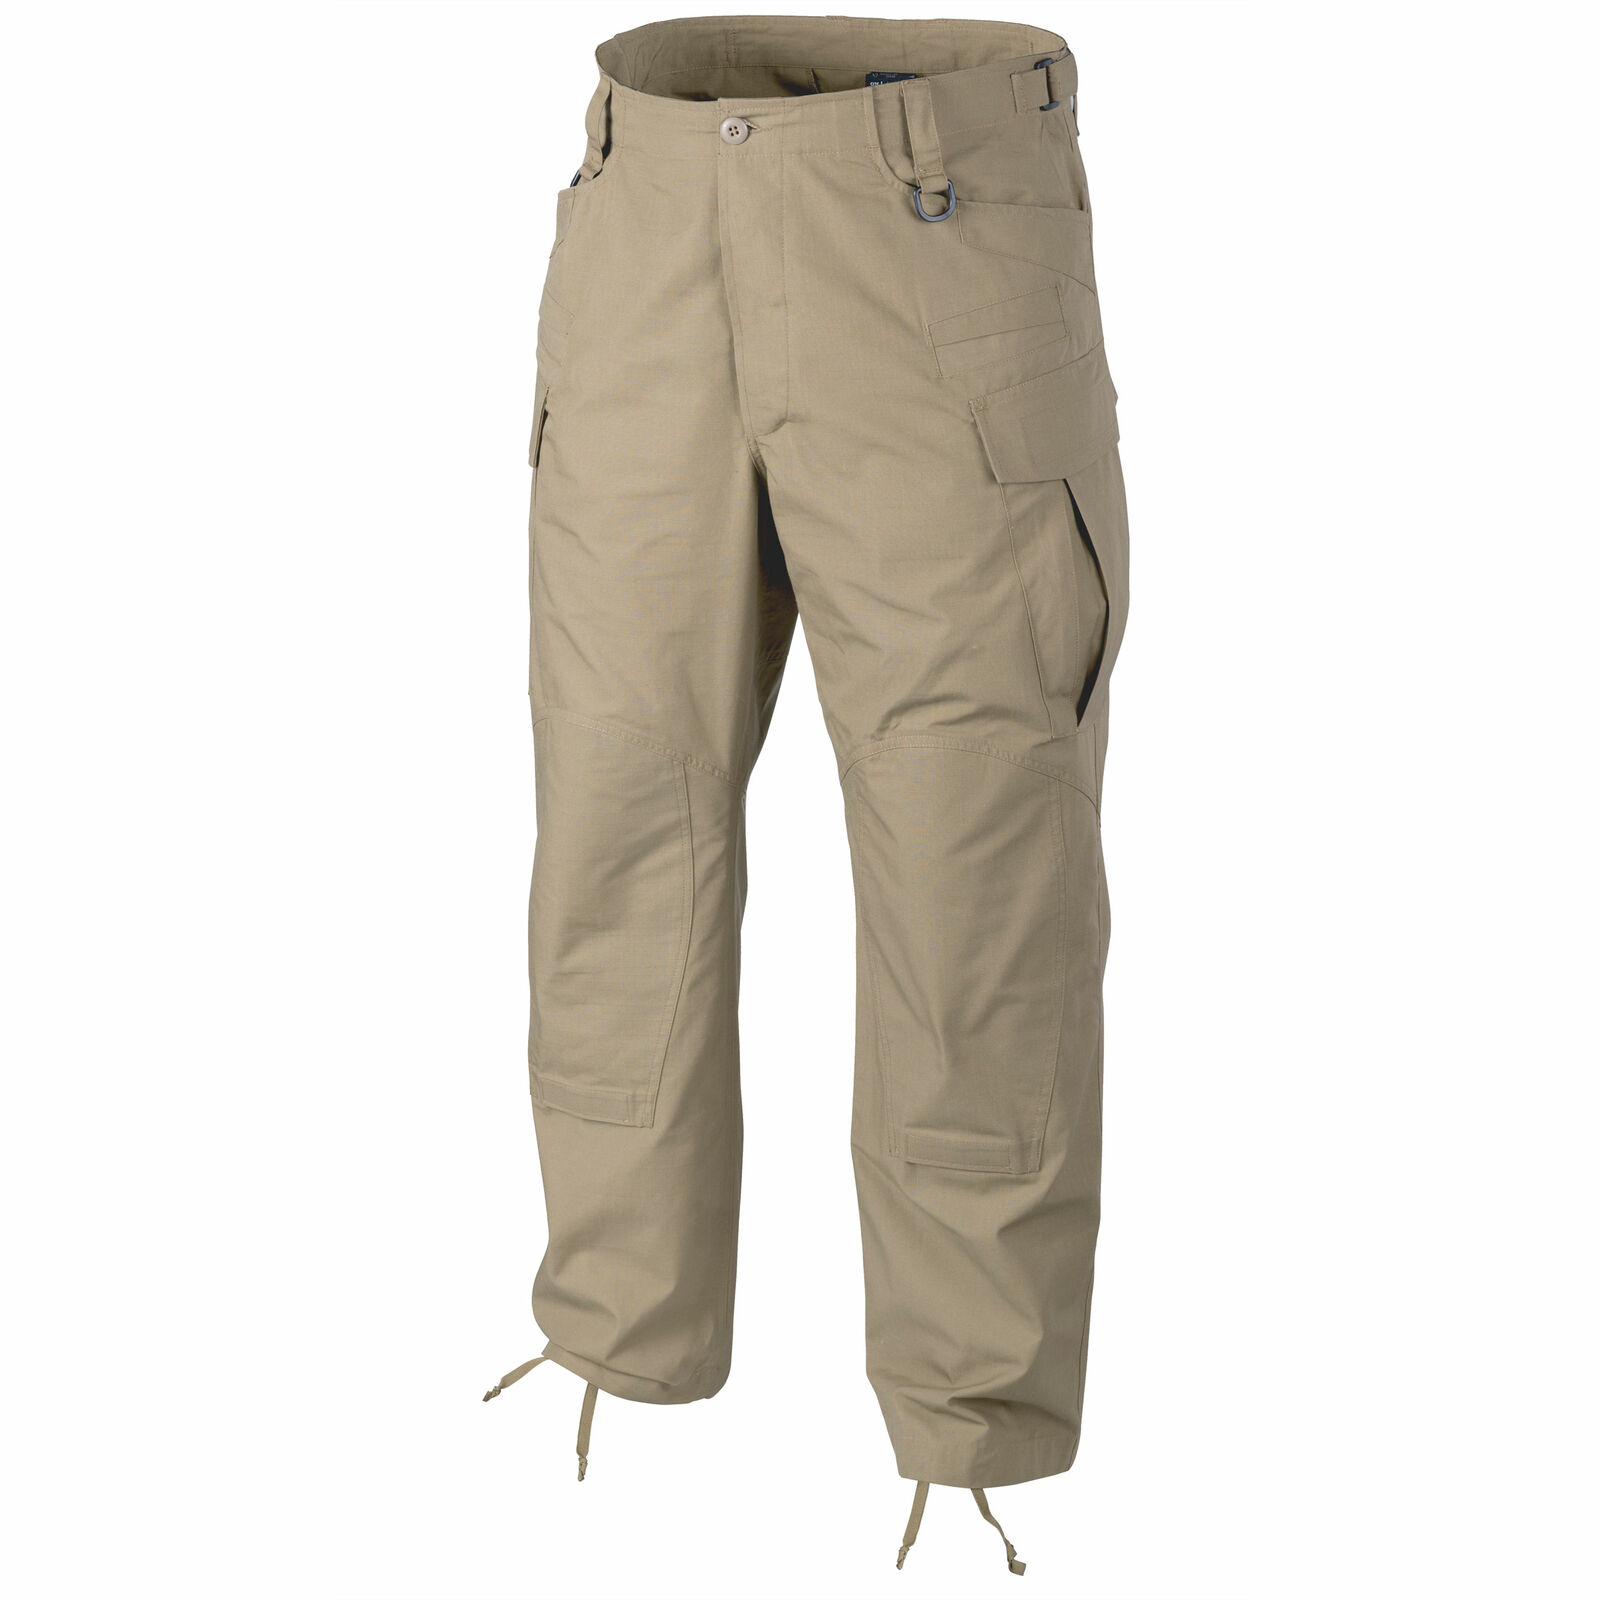 HELIKON  Tex F.I.F.A. Next Pants Khaki Ripstop SPECIAL FORCES UNIFORM COMBAT TROUSERS  fitness retailer